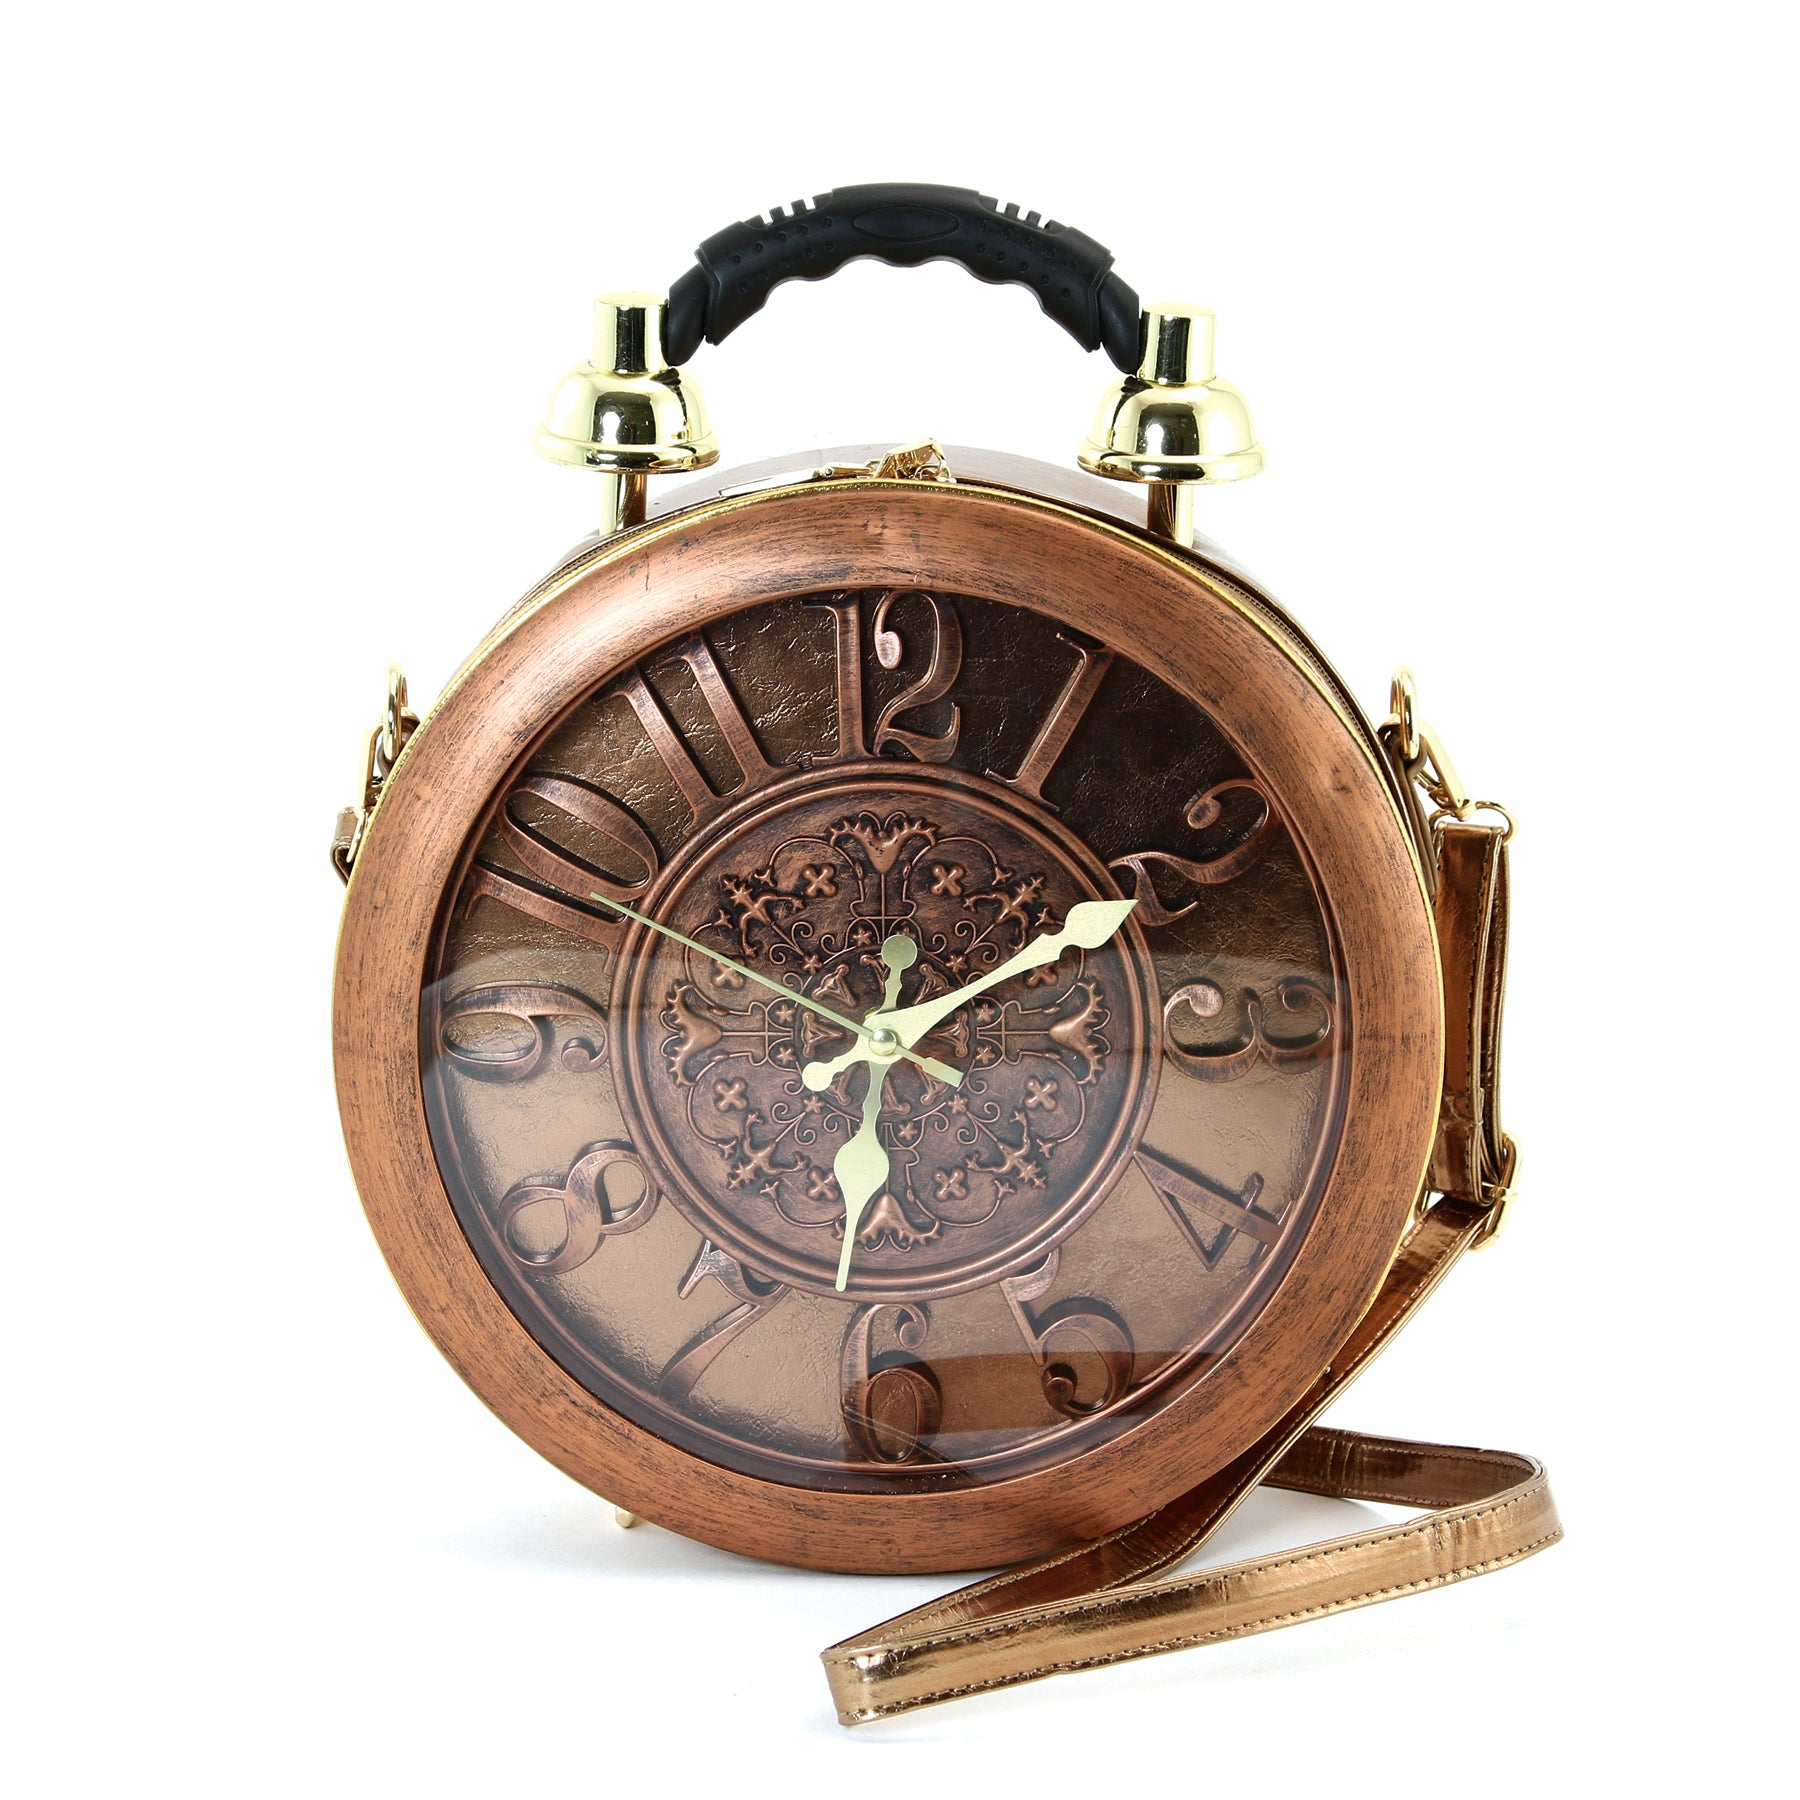 Antique Clock Bag in Vinyl Material front view